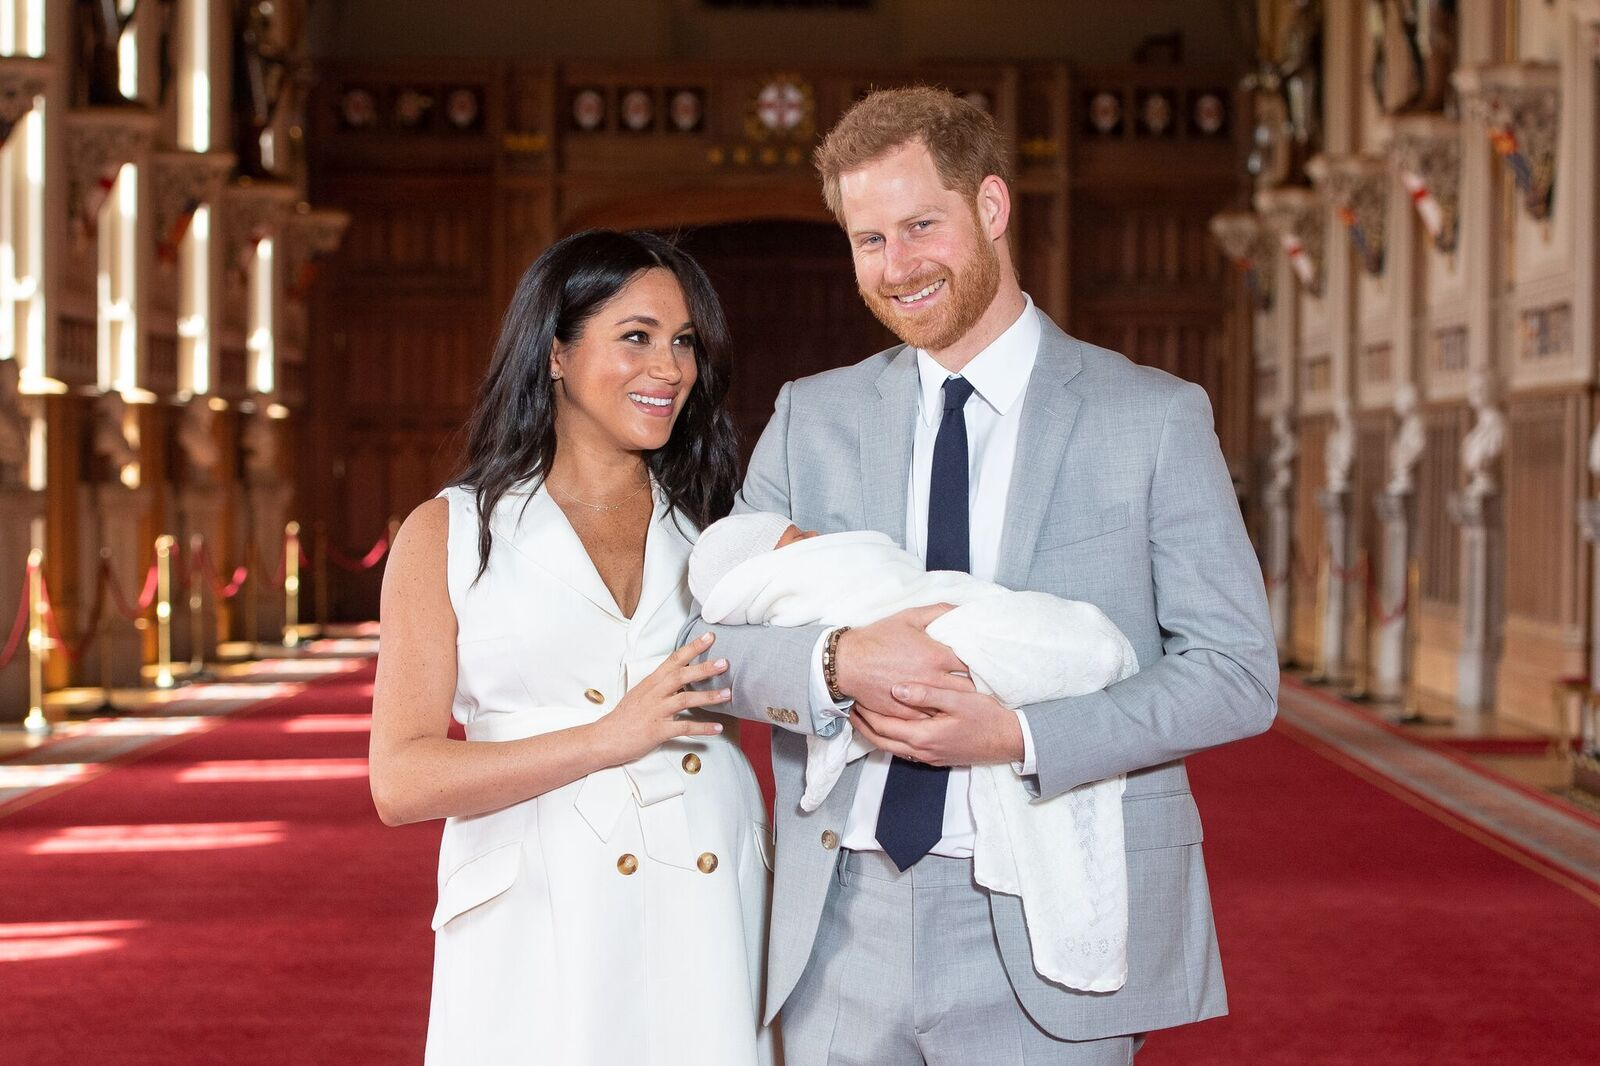 Prince Harry et femme avec son enfant sur le tapis rouge. | Photo : GettyImage